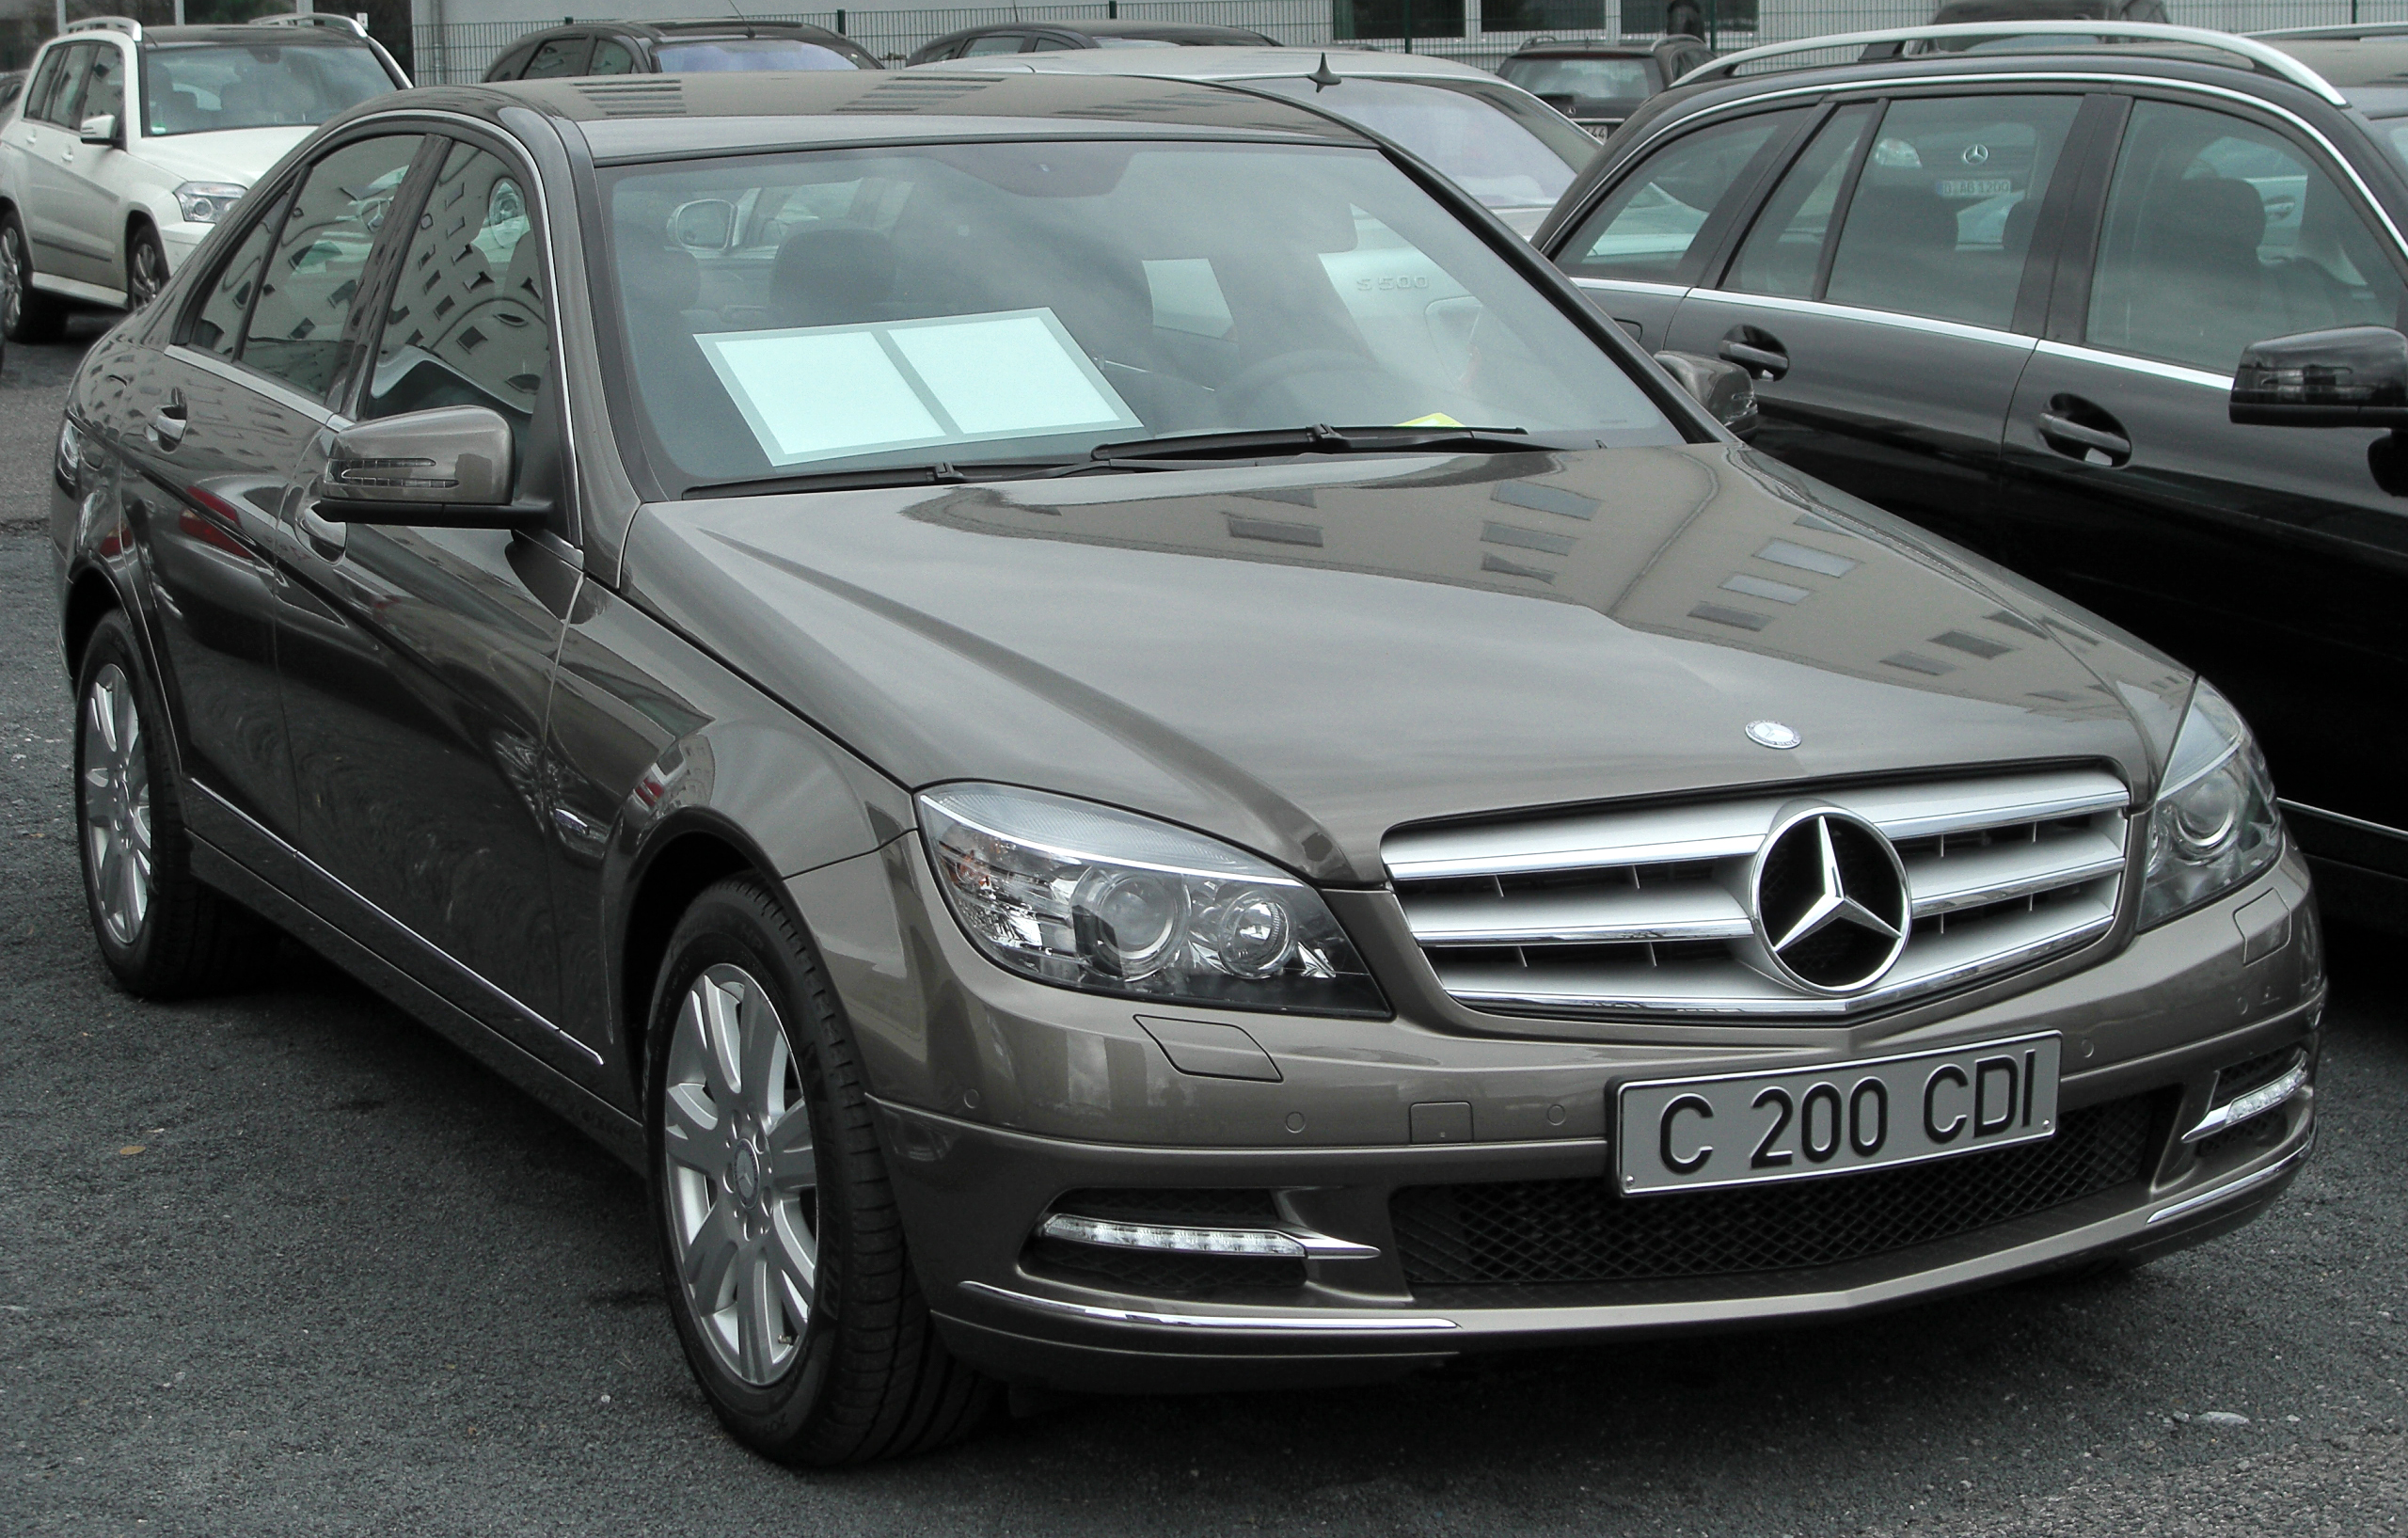 Mercedes benz c 200 cdi technical details history photos for Parts mercedes benz